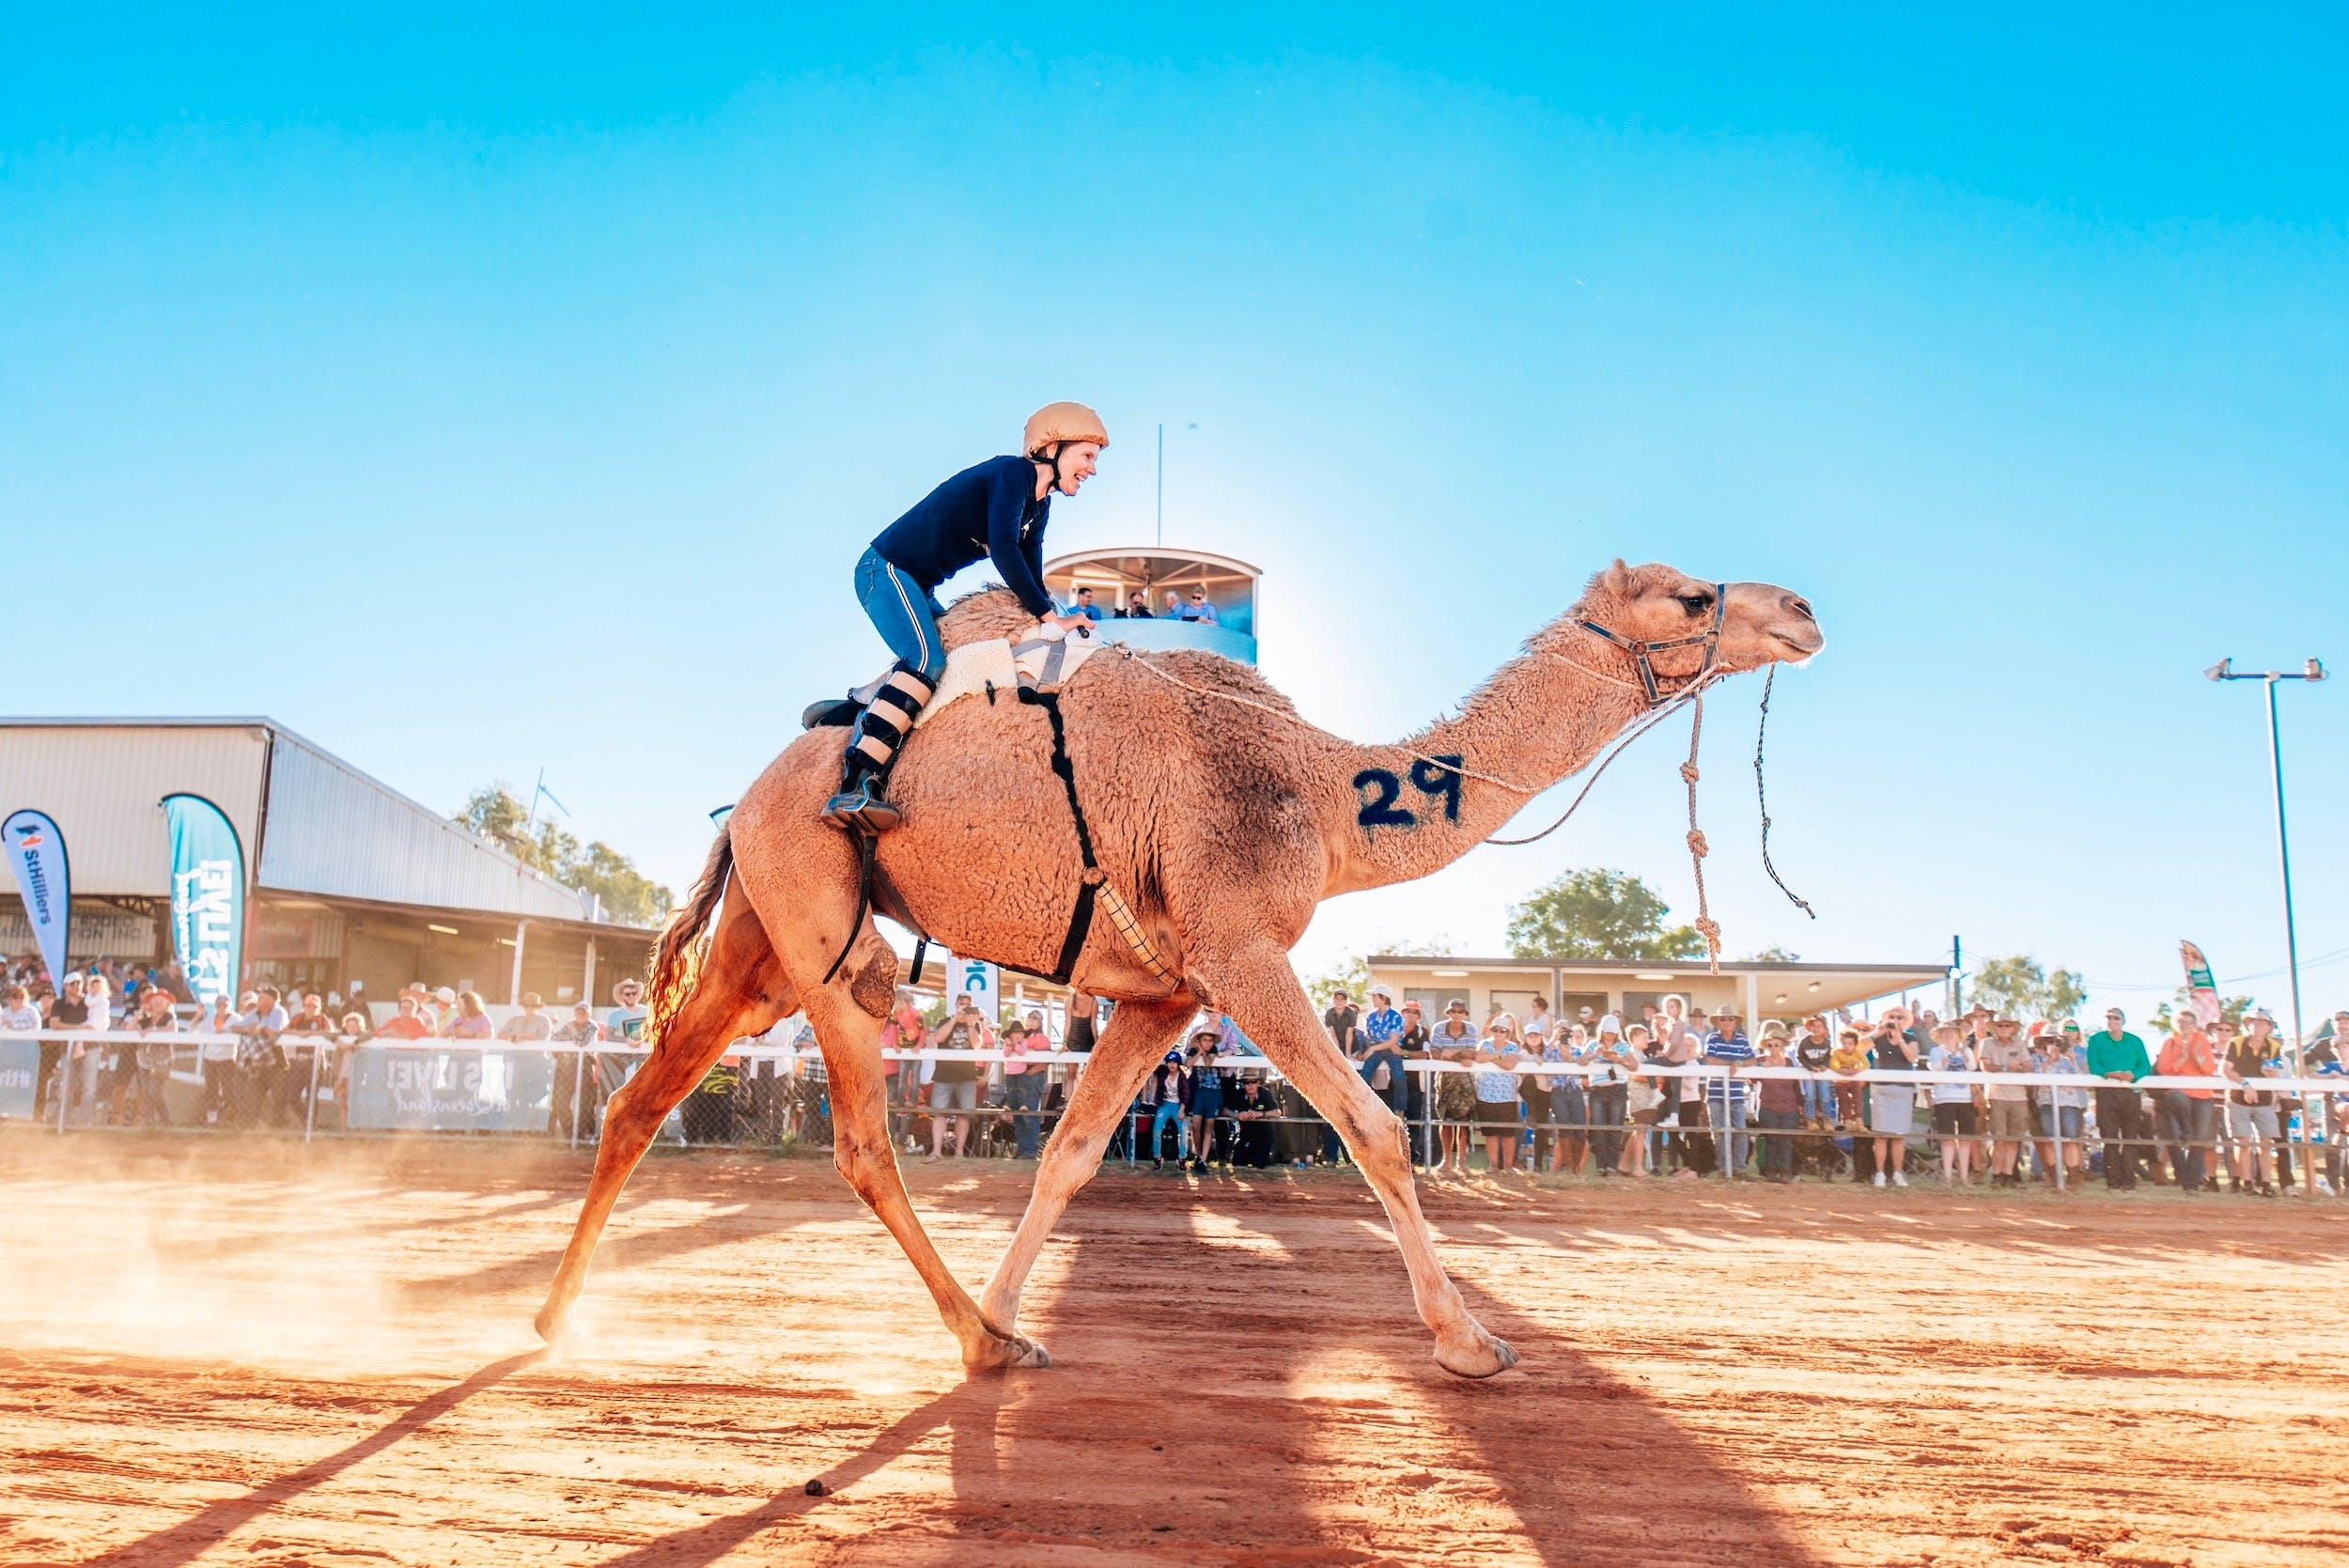 Boulia Camel Races - Australia Accommodation